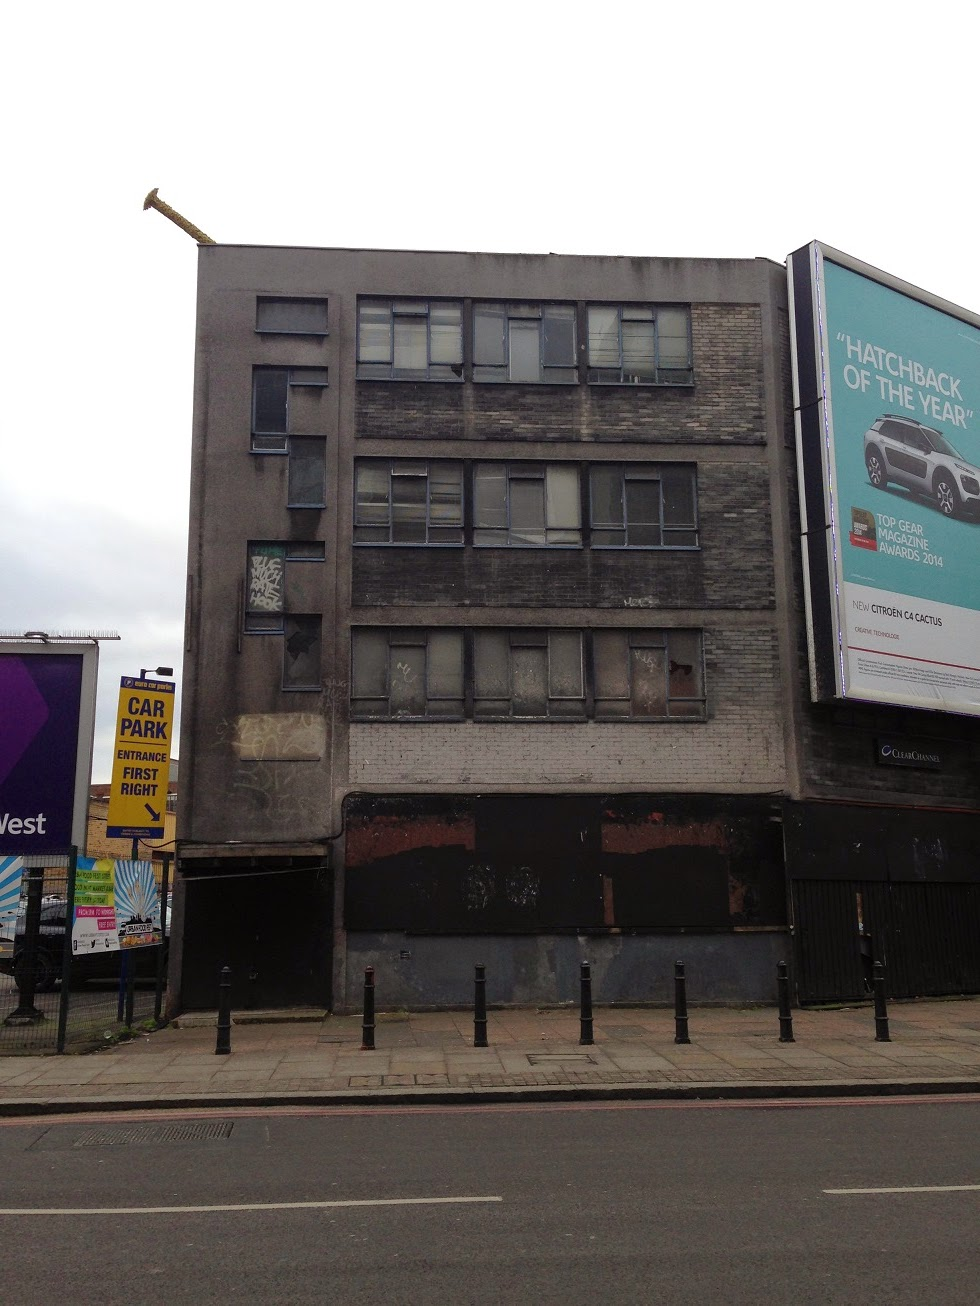 Abandonment and decay, Shoreditch, London